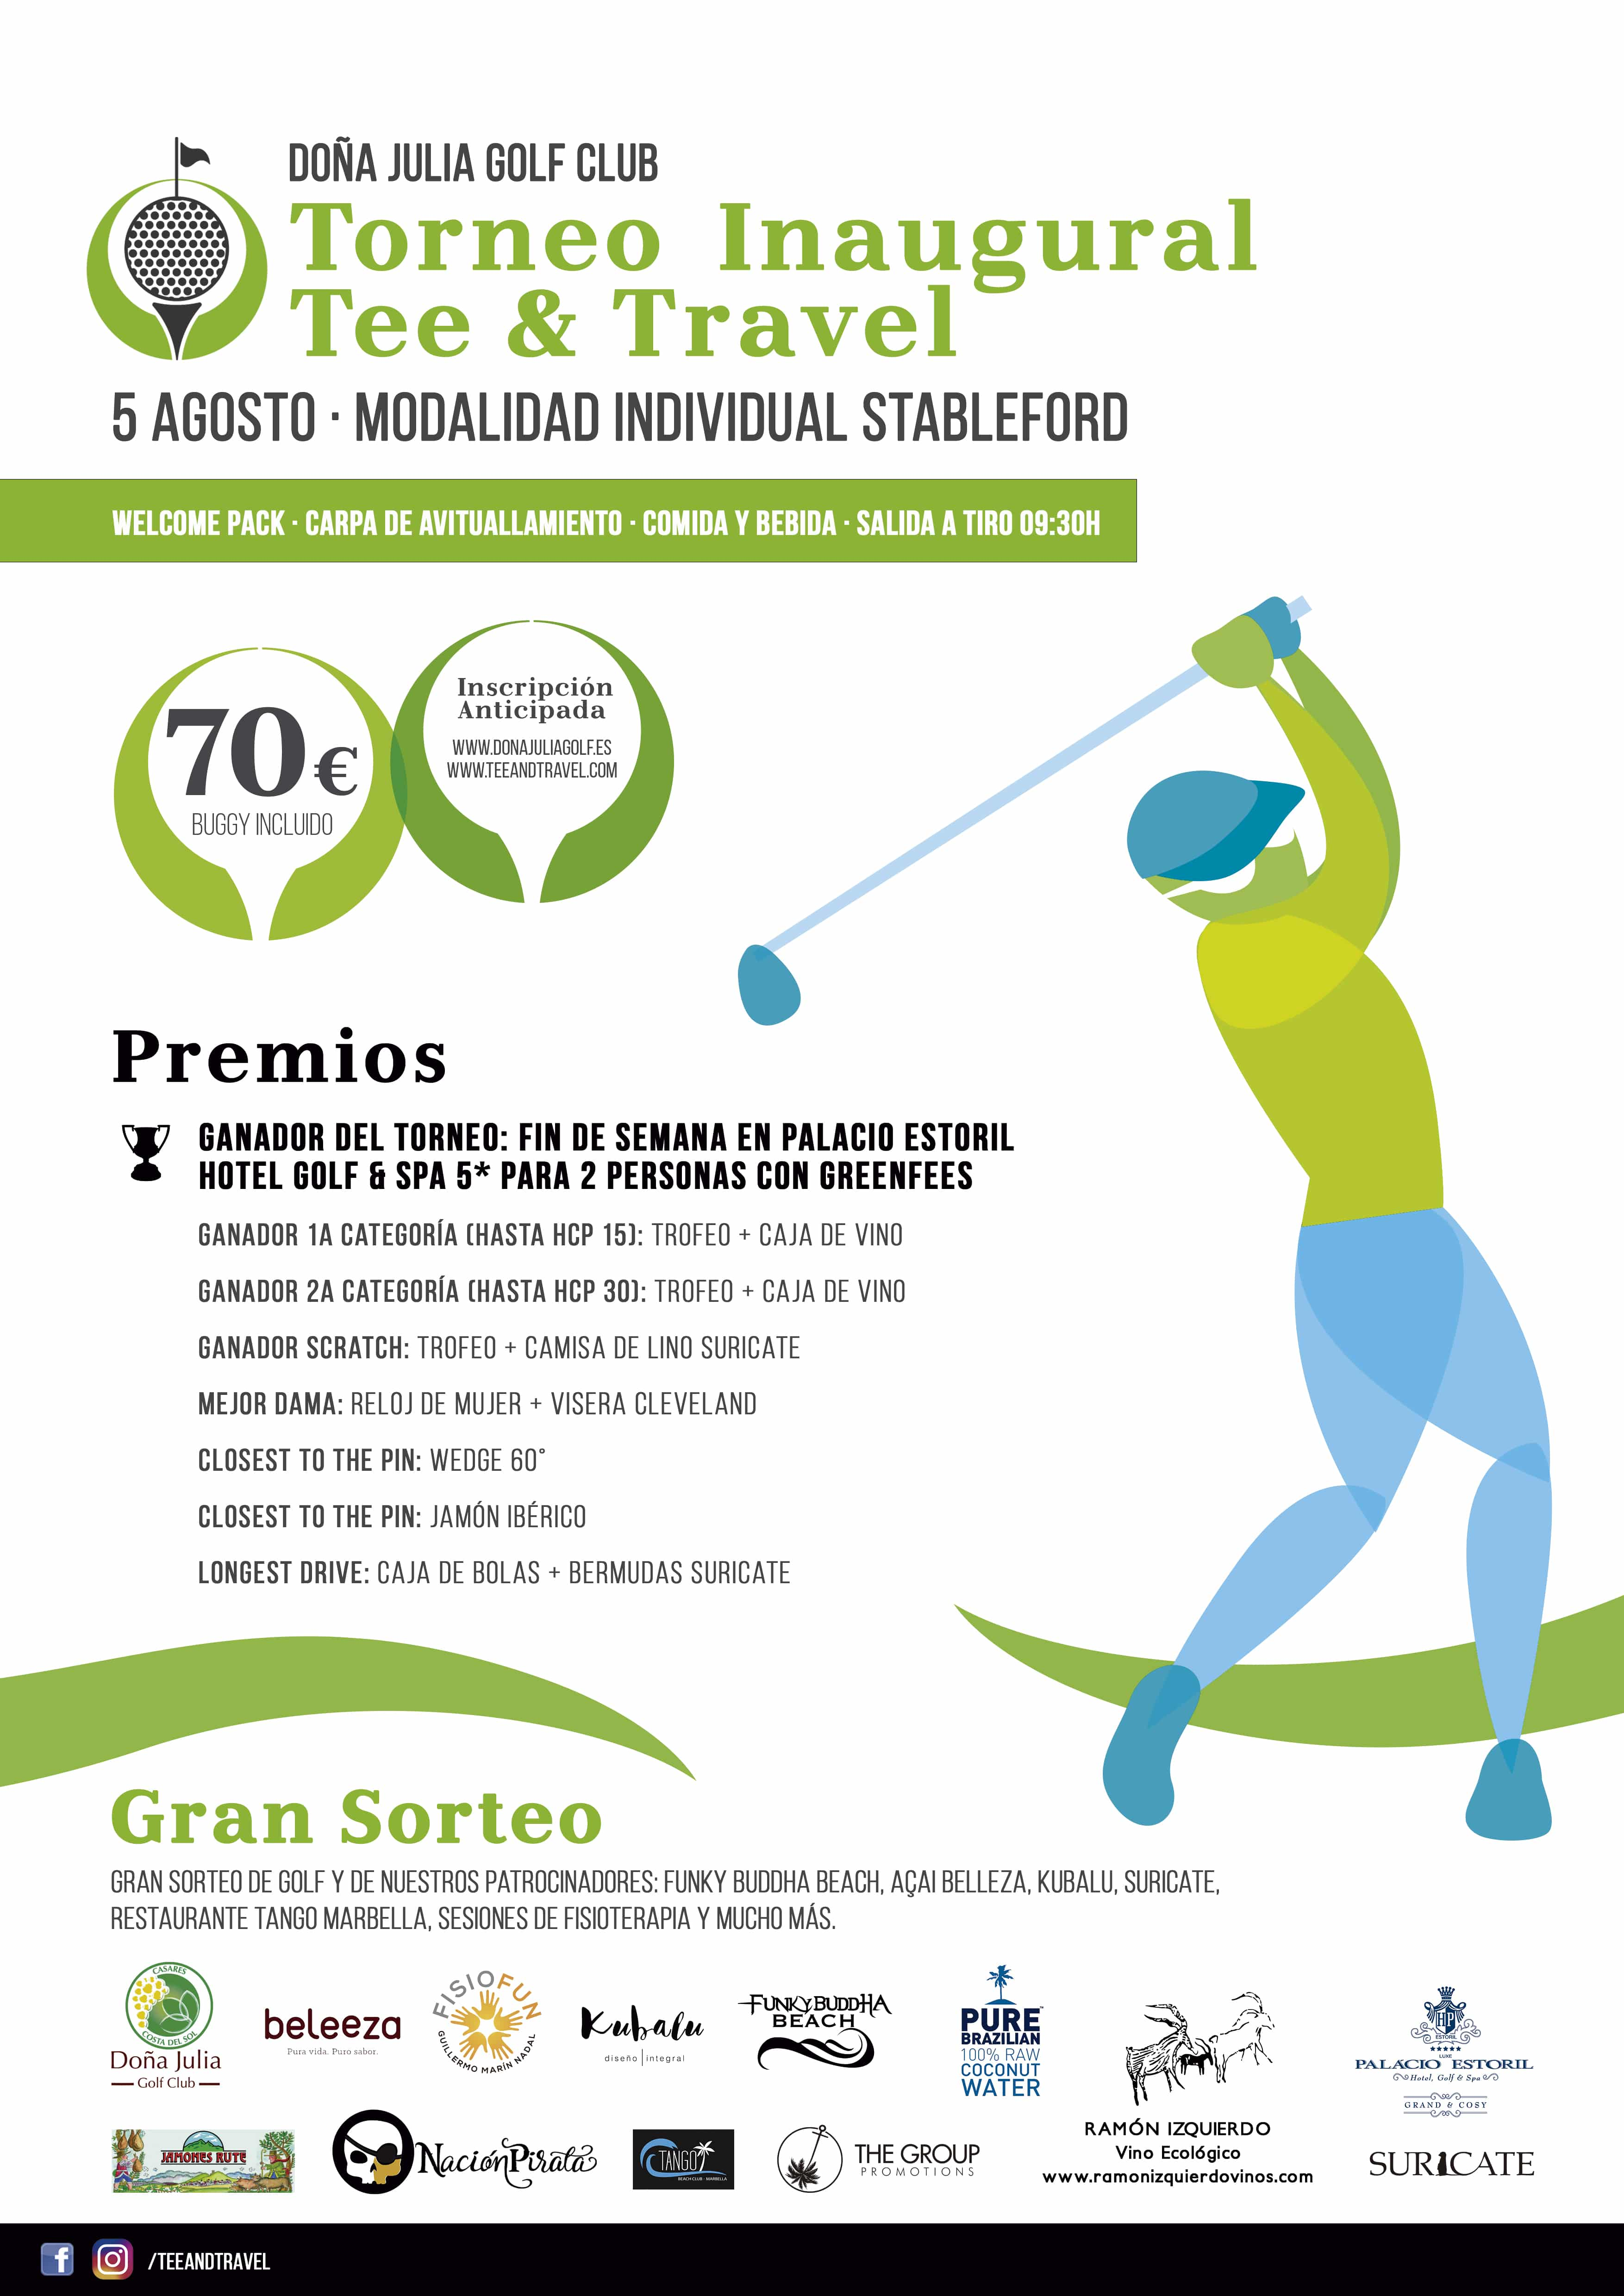 Torneo de Golf Inaugural Tee & Travel